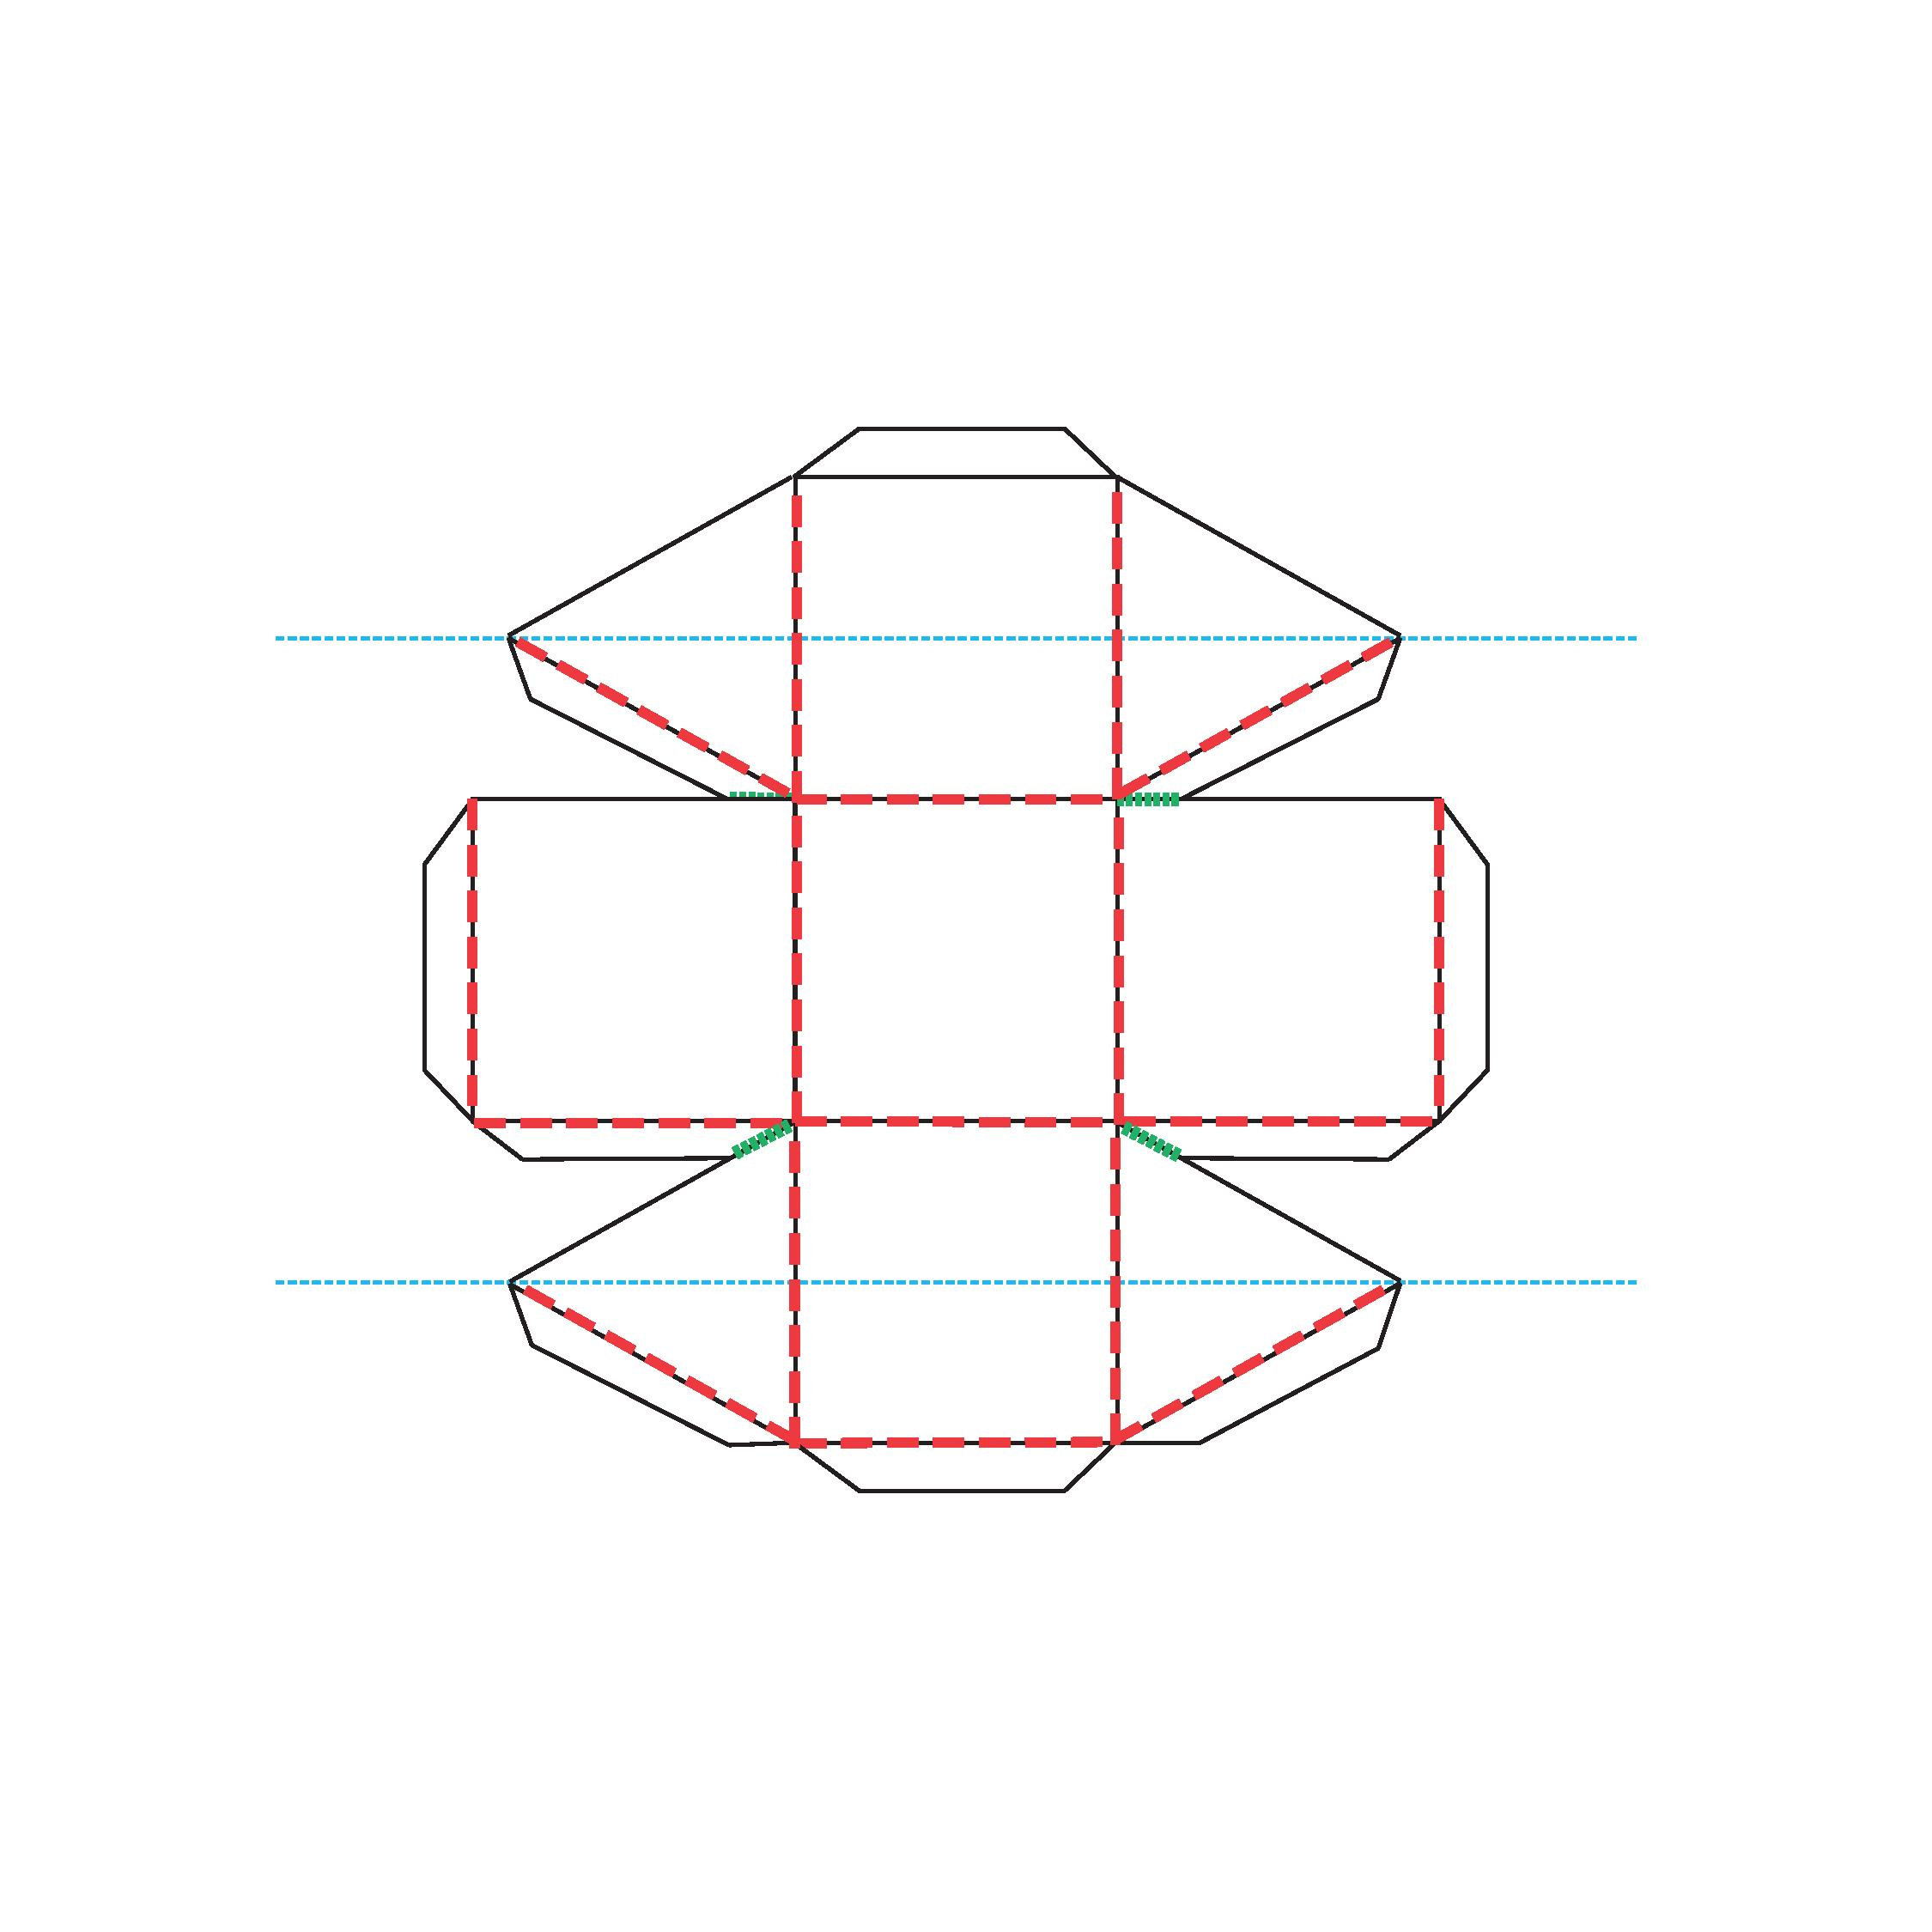 Picture of Polygonal Skeleton: Templates 1, 2, 3